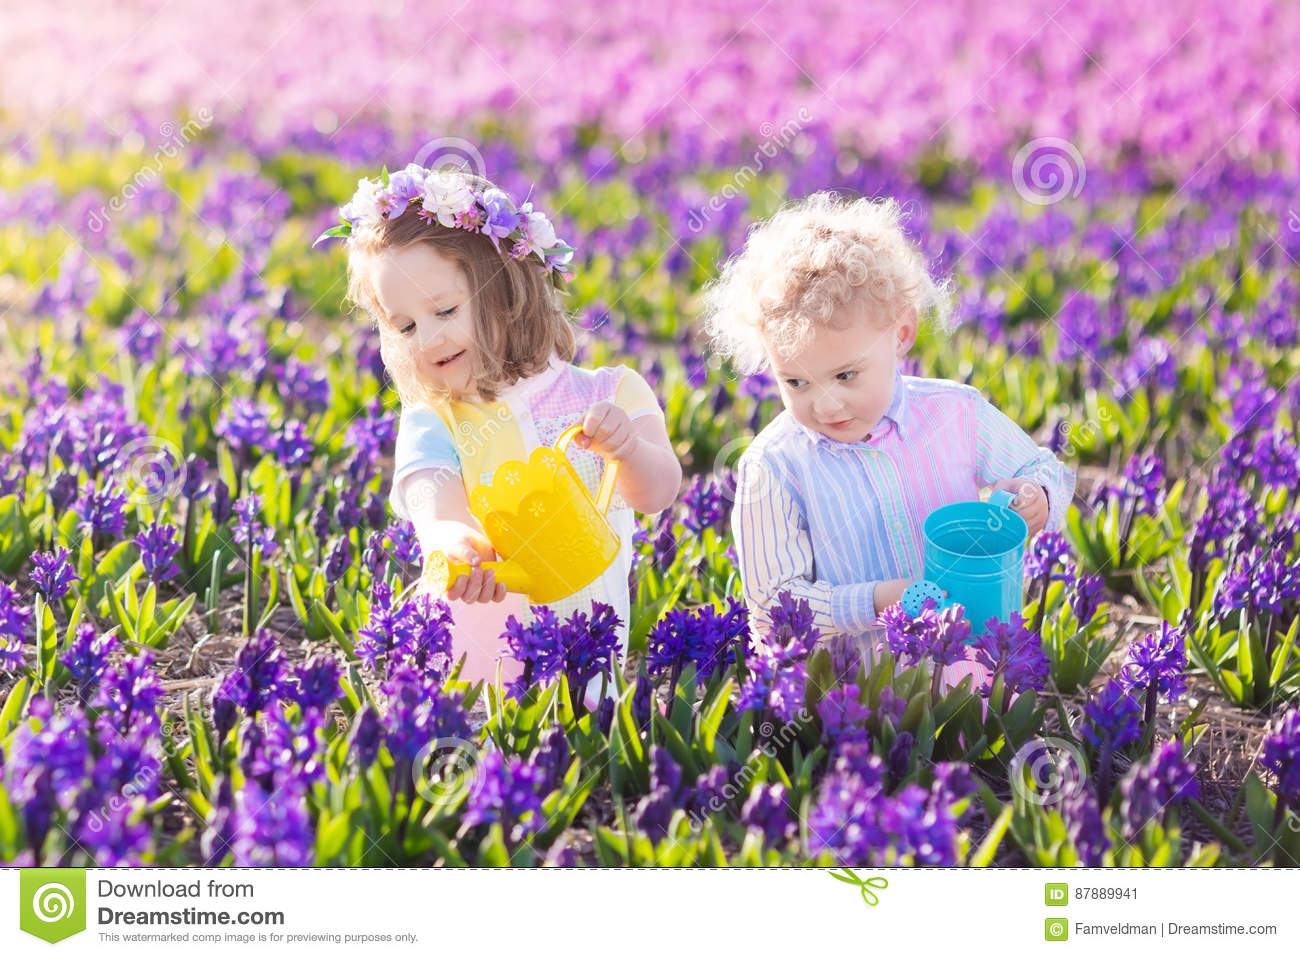 Kids plant and water flowers in spring garden stock image image of children planting spring flowers in sunny garden little boy and girl gardener plant hyacinth daffodil snowdrop in flower bed gardening tools and water mightylinksfo